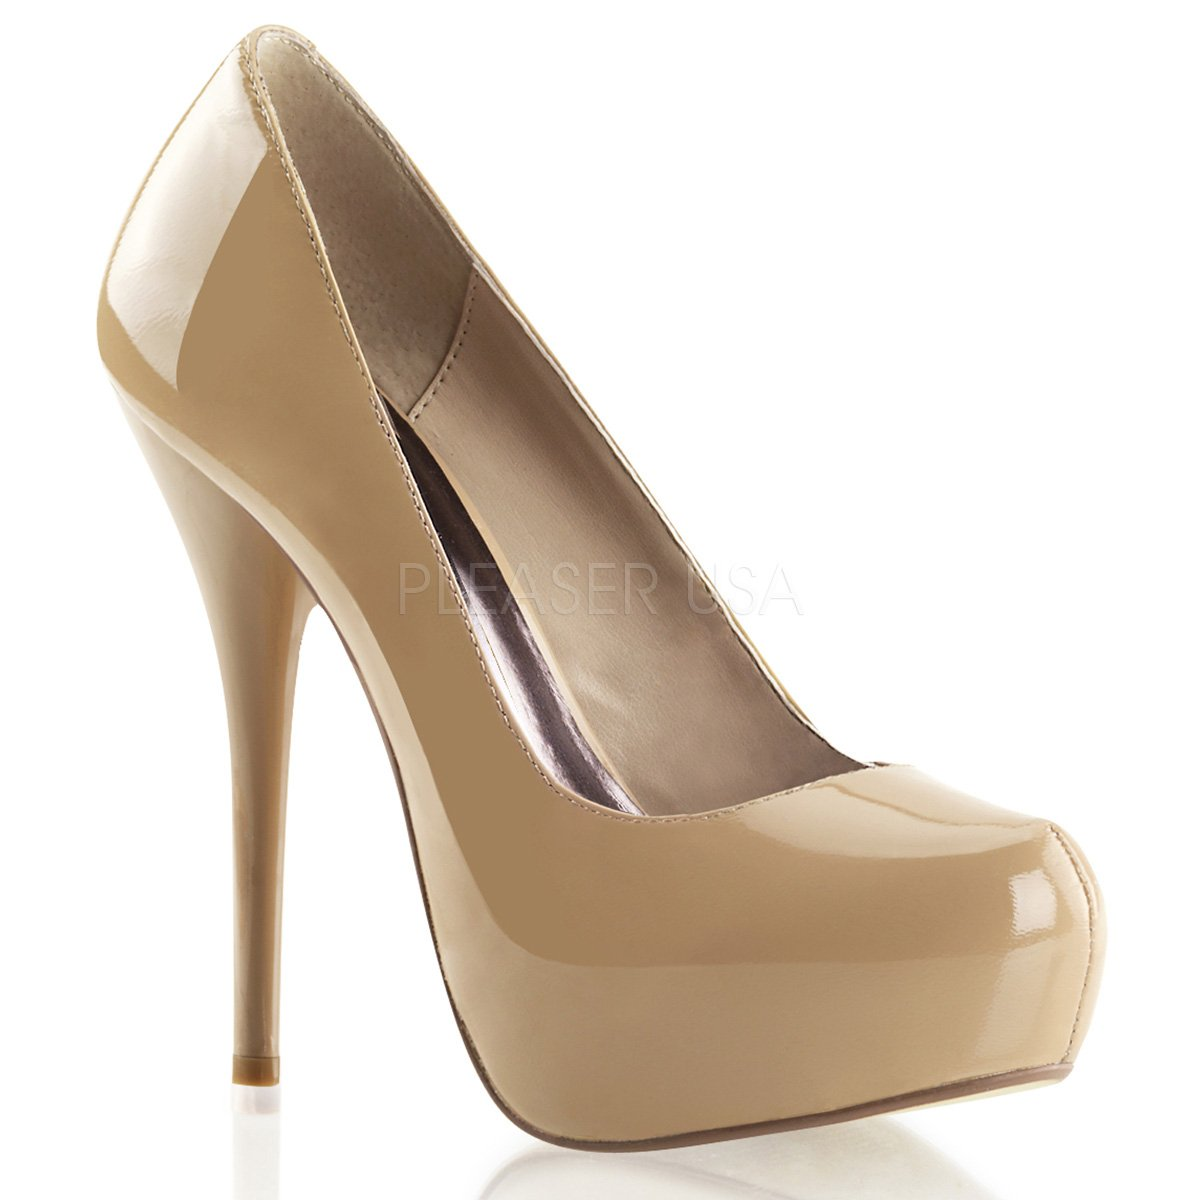 Pleaser Day & Night - Gorgeous-20 Gorgeous-20 Gorgeous-20 - Sexy edle High Heels Lackleder Plateau Pumps 35-42 55b8db